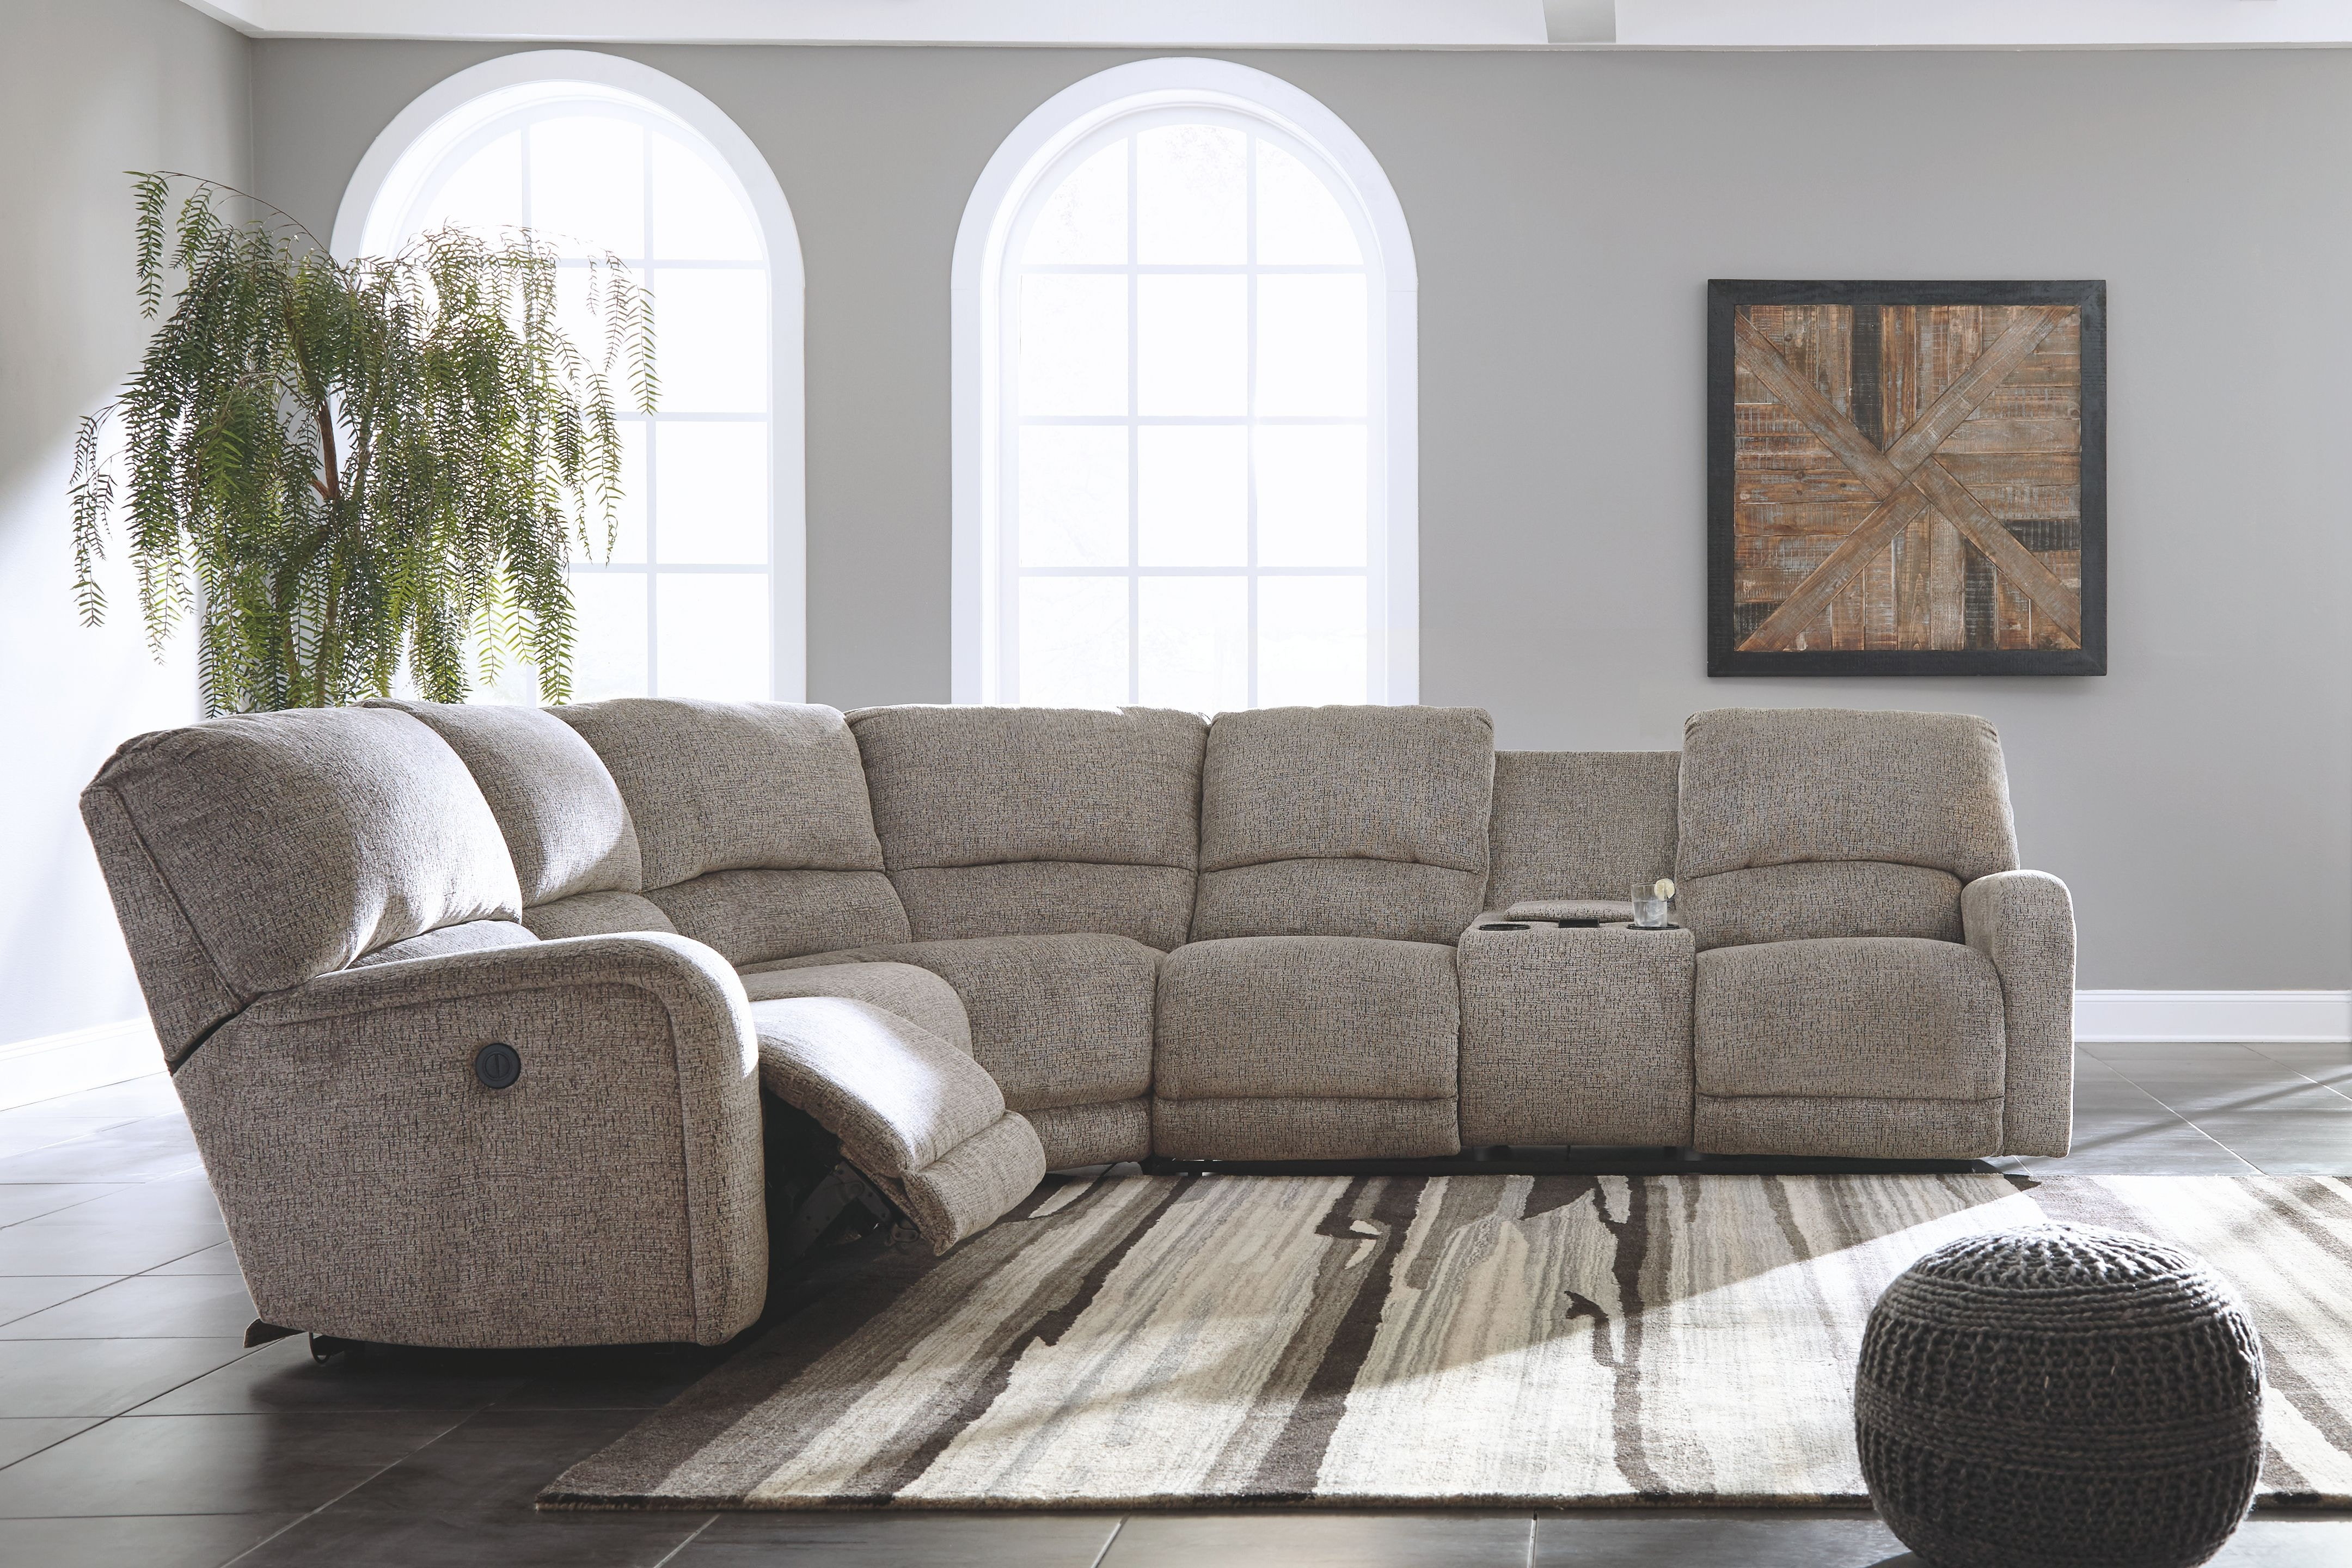 Charming Signature Design By Ashley Pittsfield LAF Zero Wall Power Recliner On Sale  At Elgin Furniture In Euclid, Cleveland Heights, U0026 North Randall